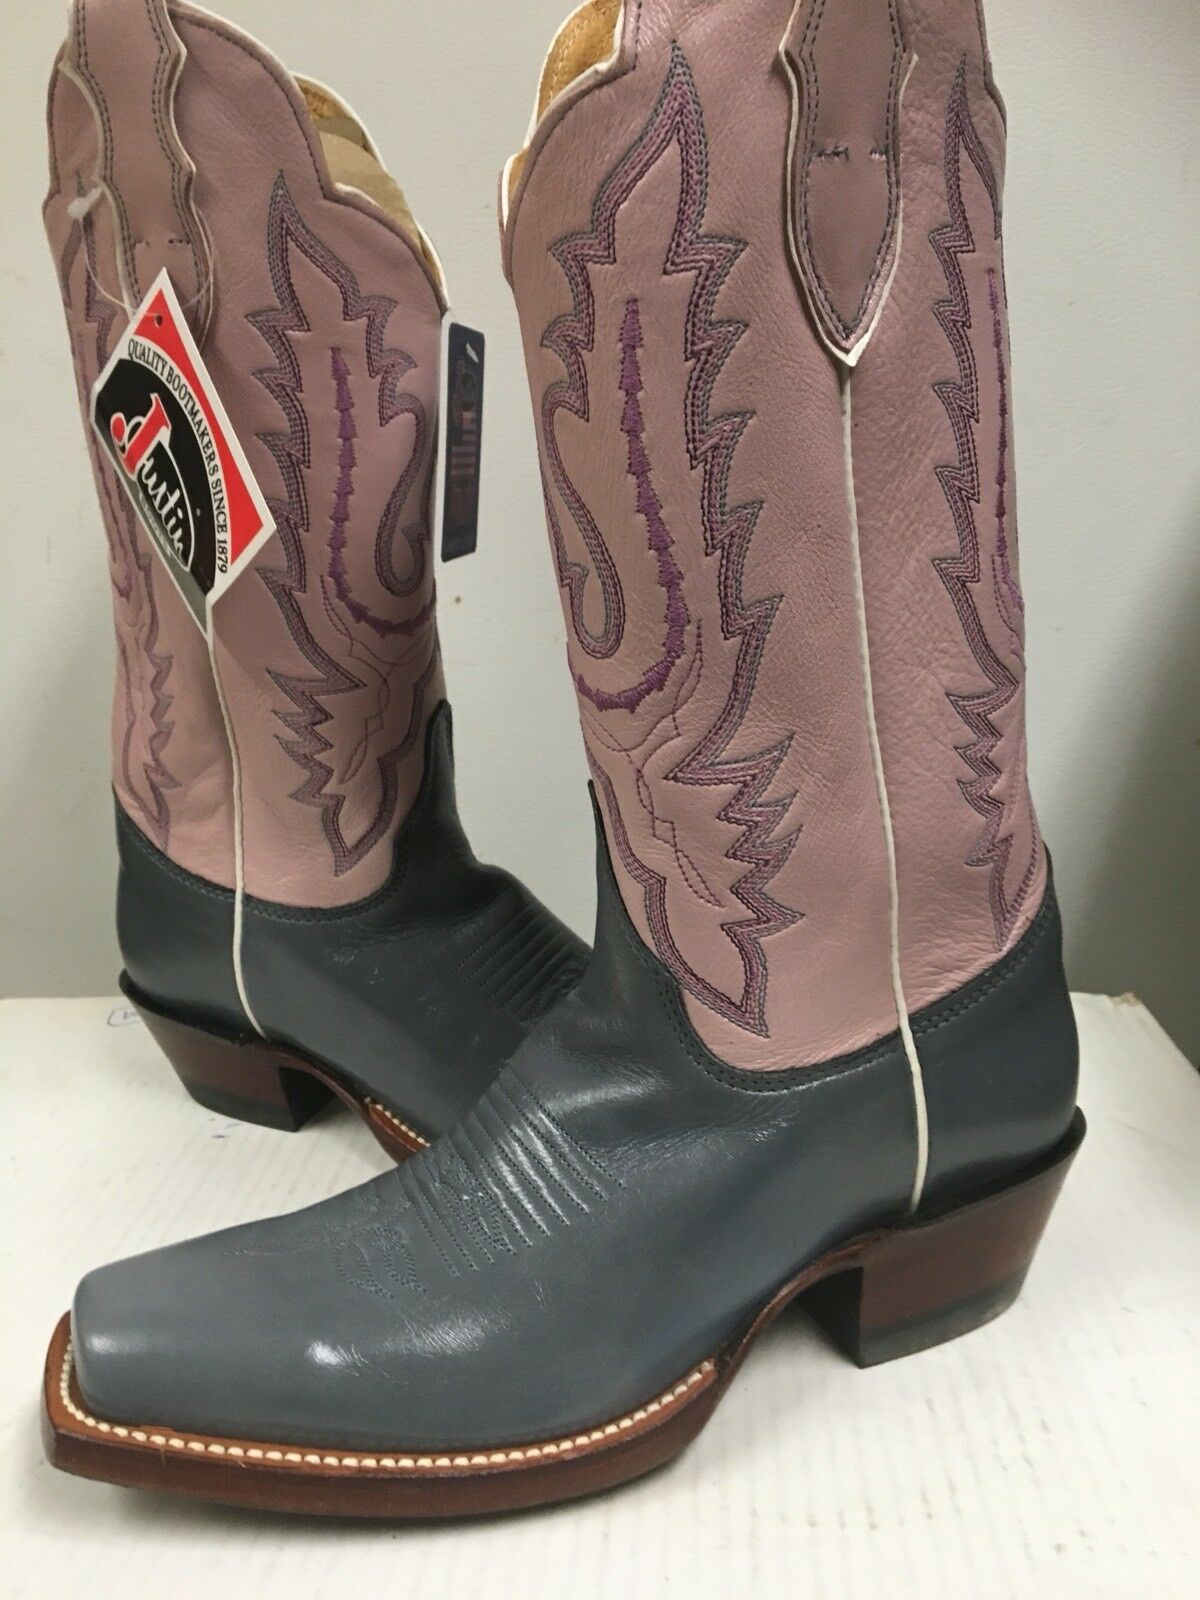 Justin Women's Western Leather  Boots  L2655 PINK LUCIOUS. L2655 SIZE 9 B NEW